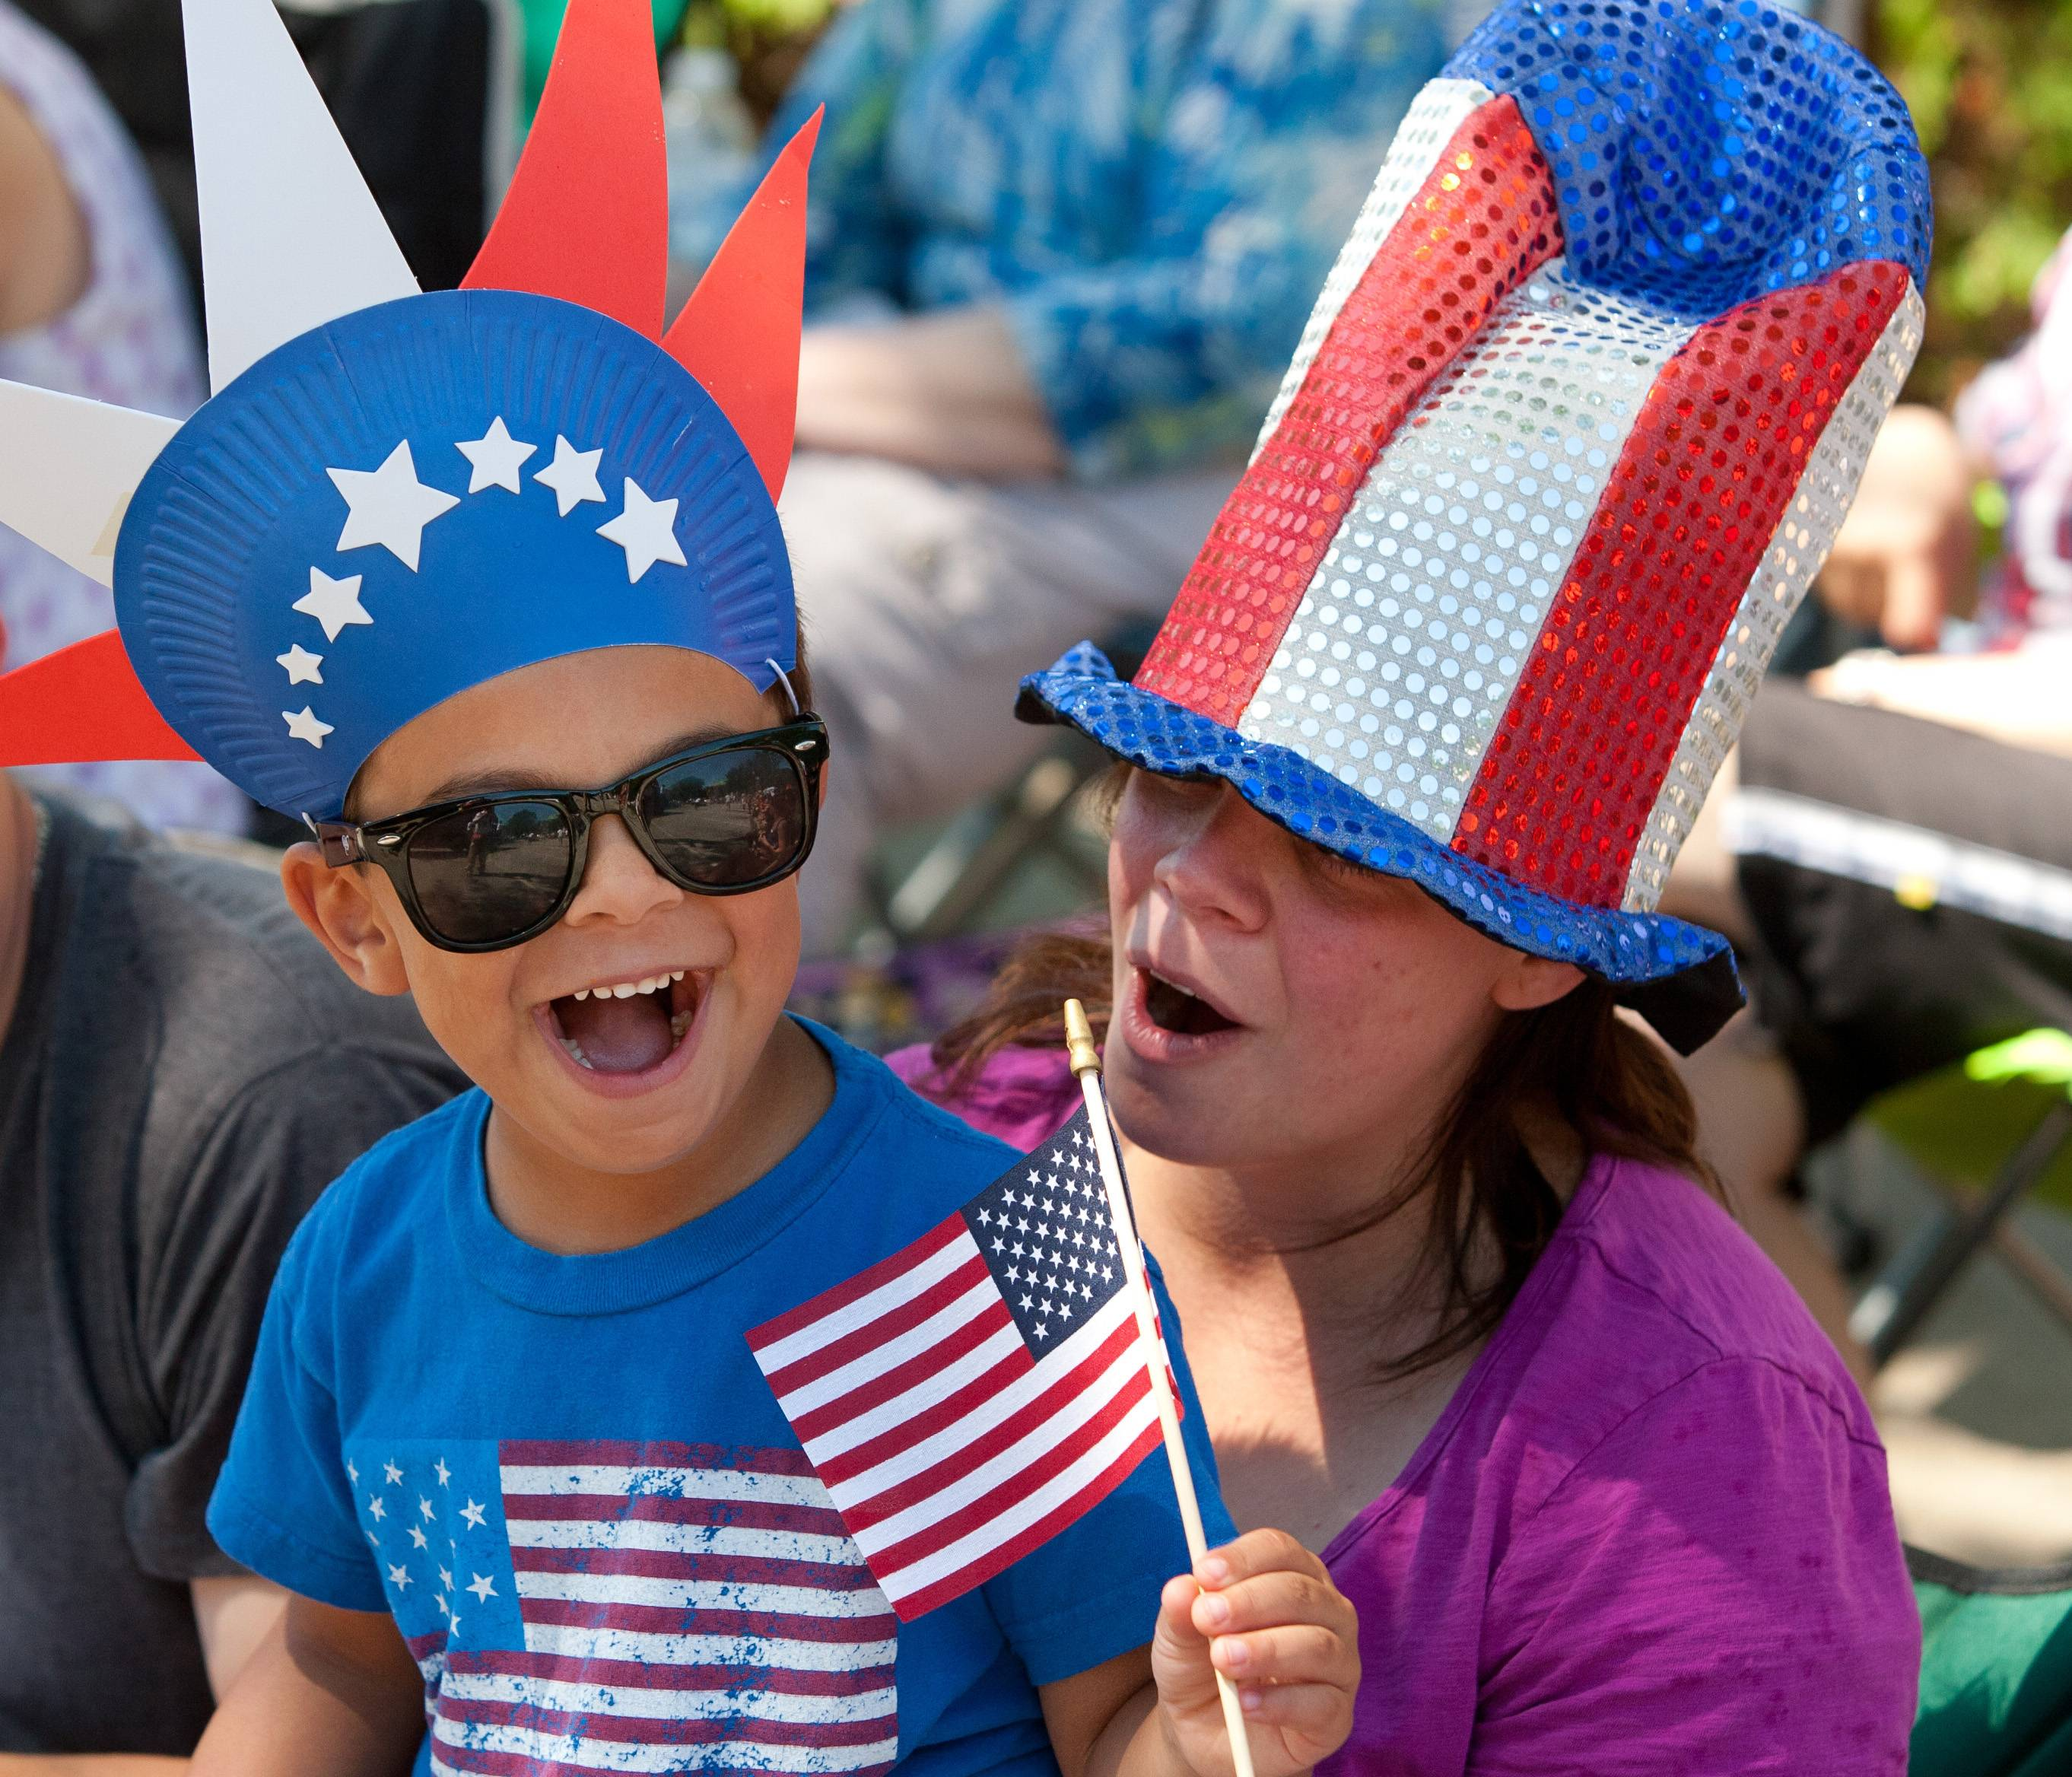 Nicholas Principe, 4, and his mother, Melissa Principe of Wheaton, watch their hometown Independence Day parade.